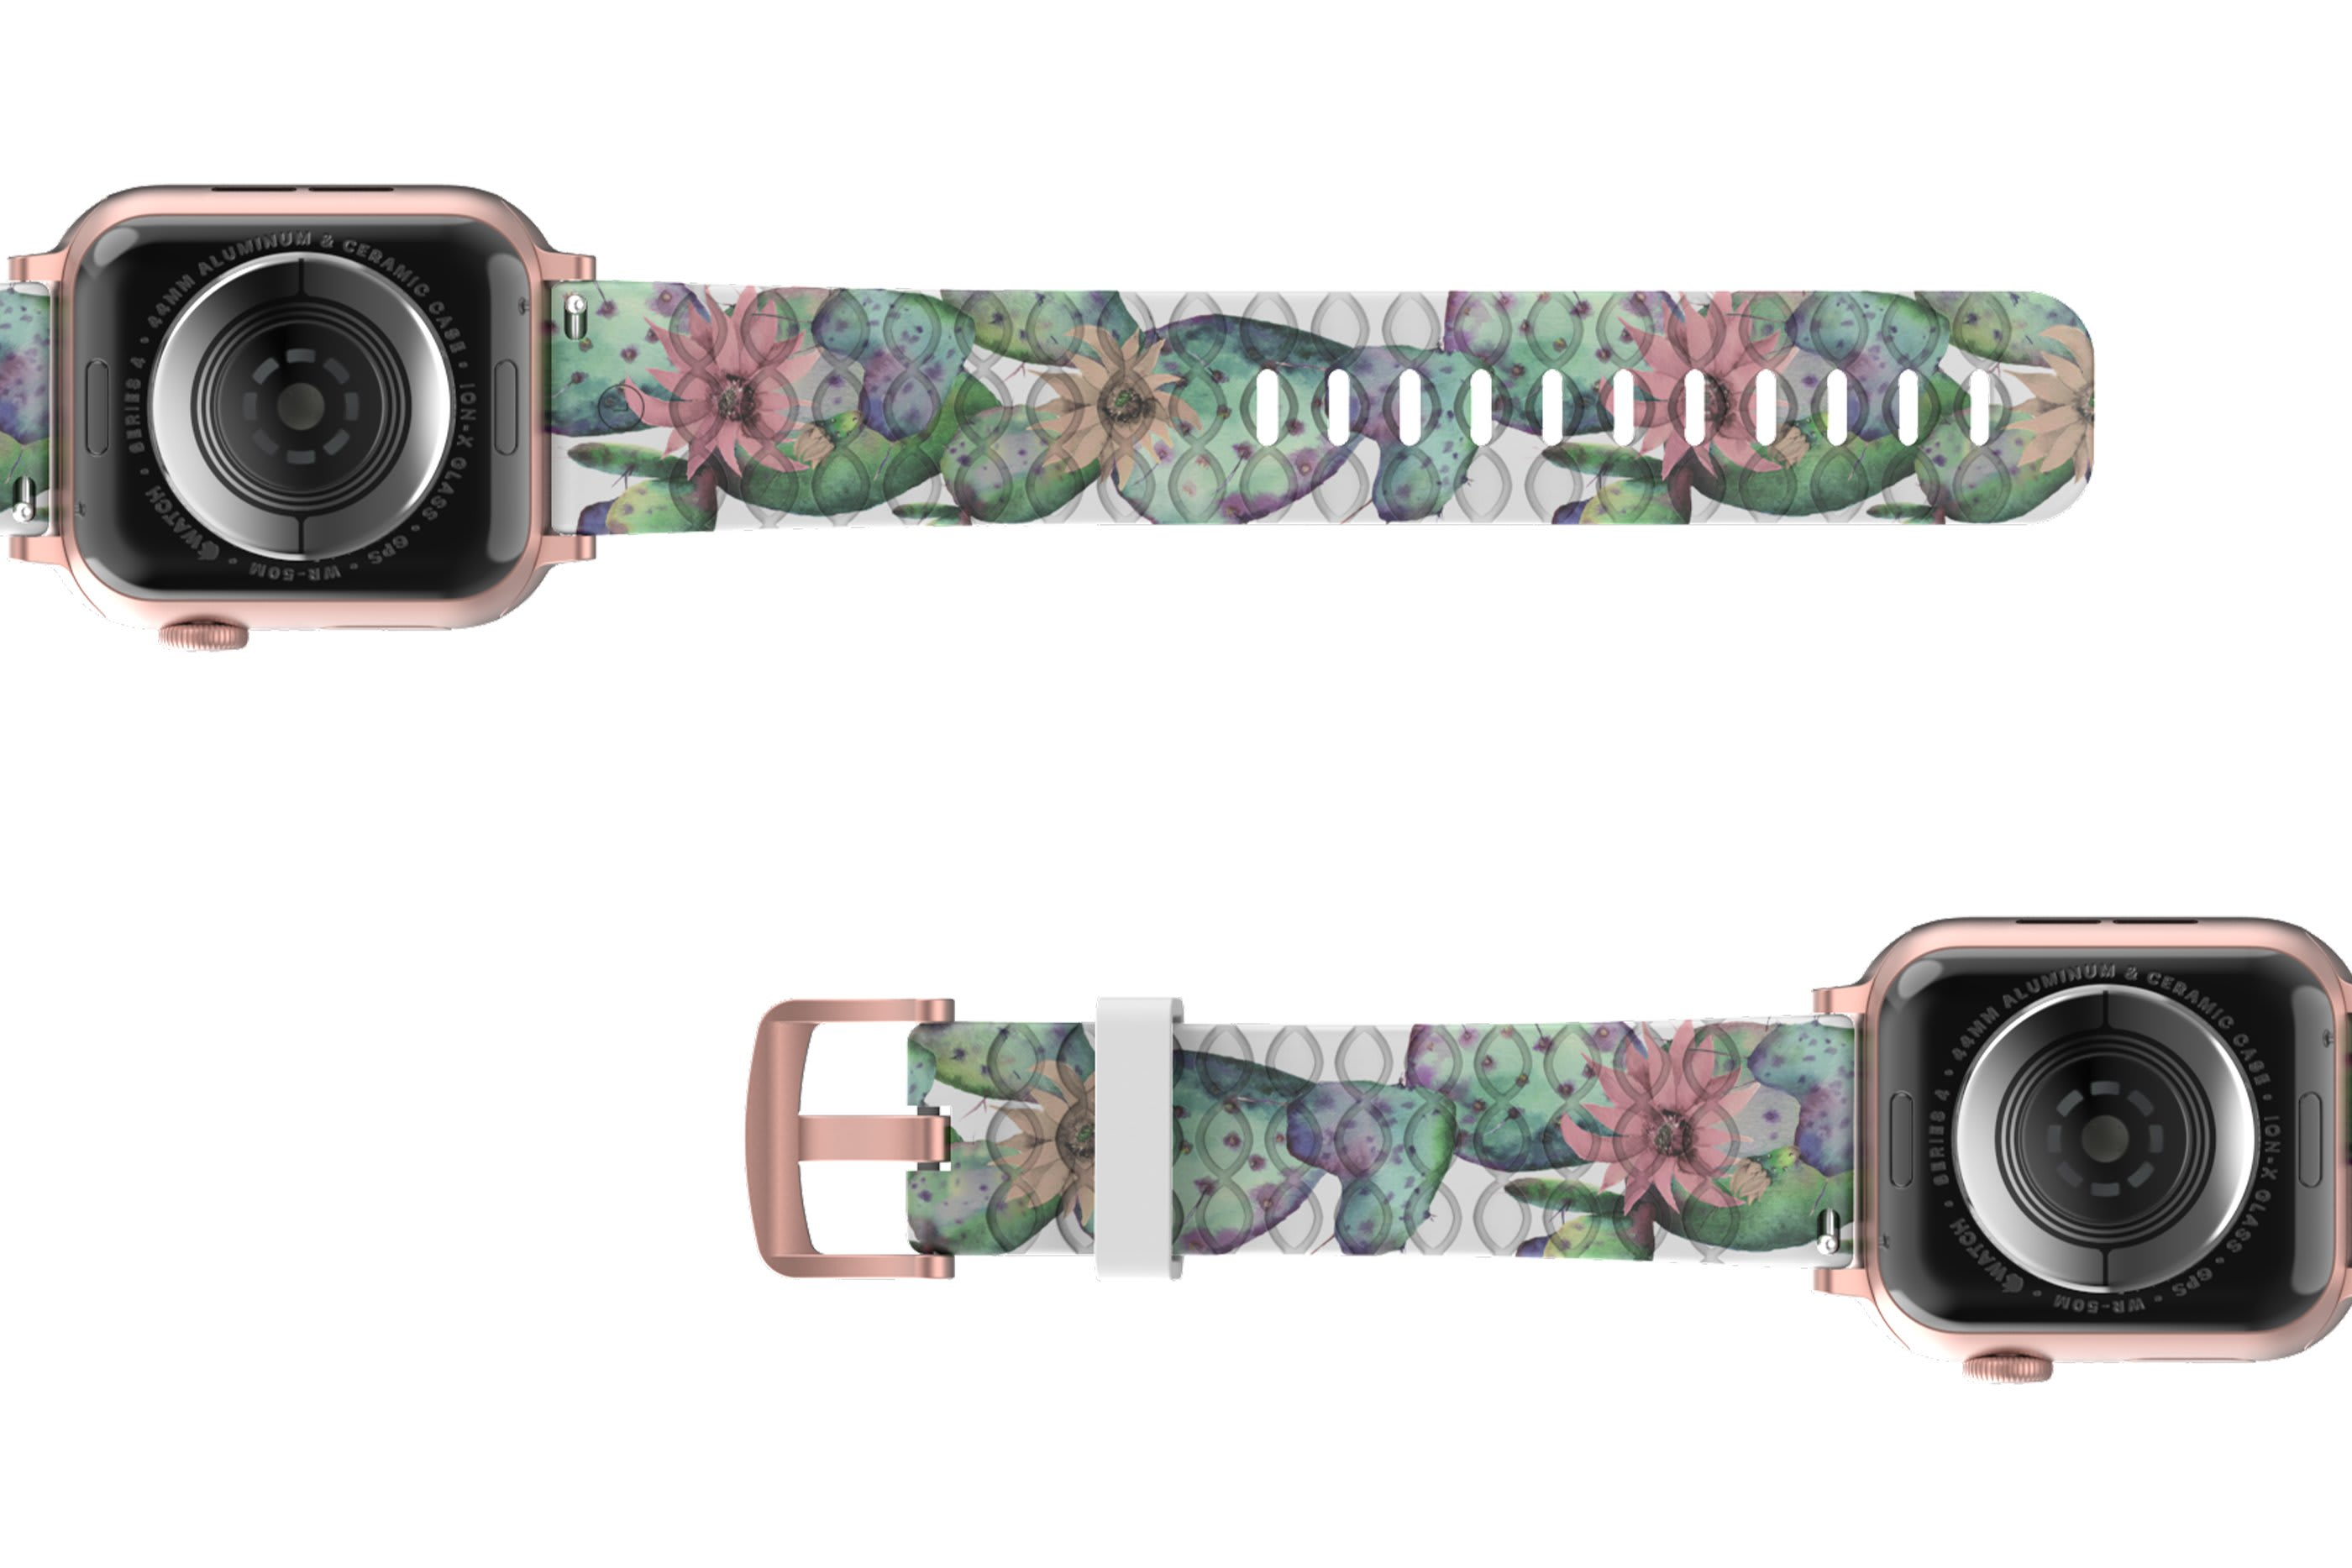 Cactus Bloom Apple Watch Band with rose gold hardware viewed bottom up